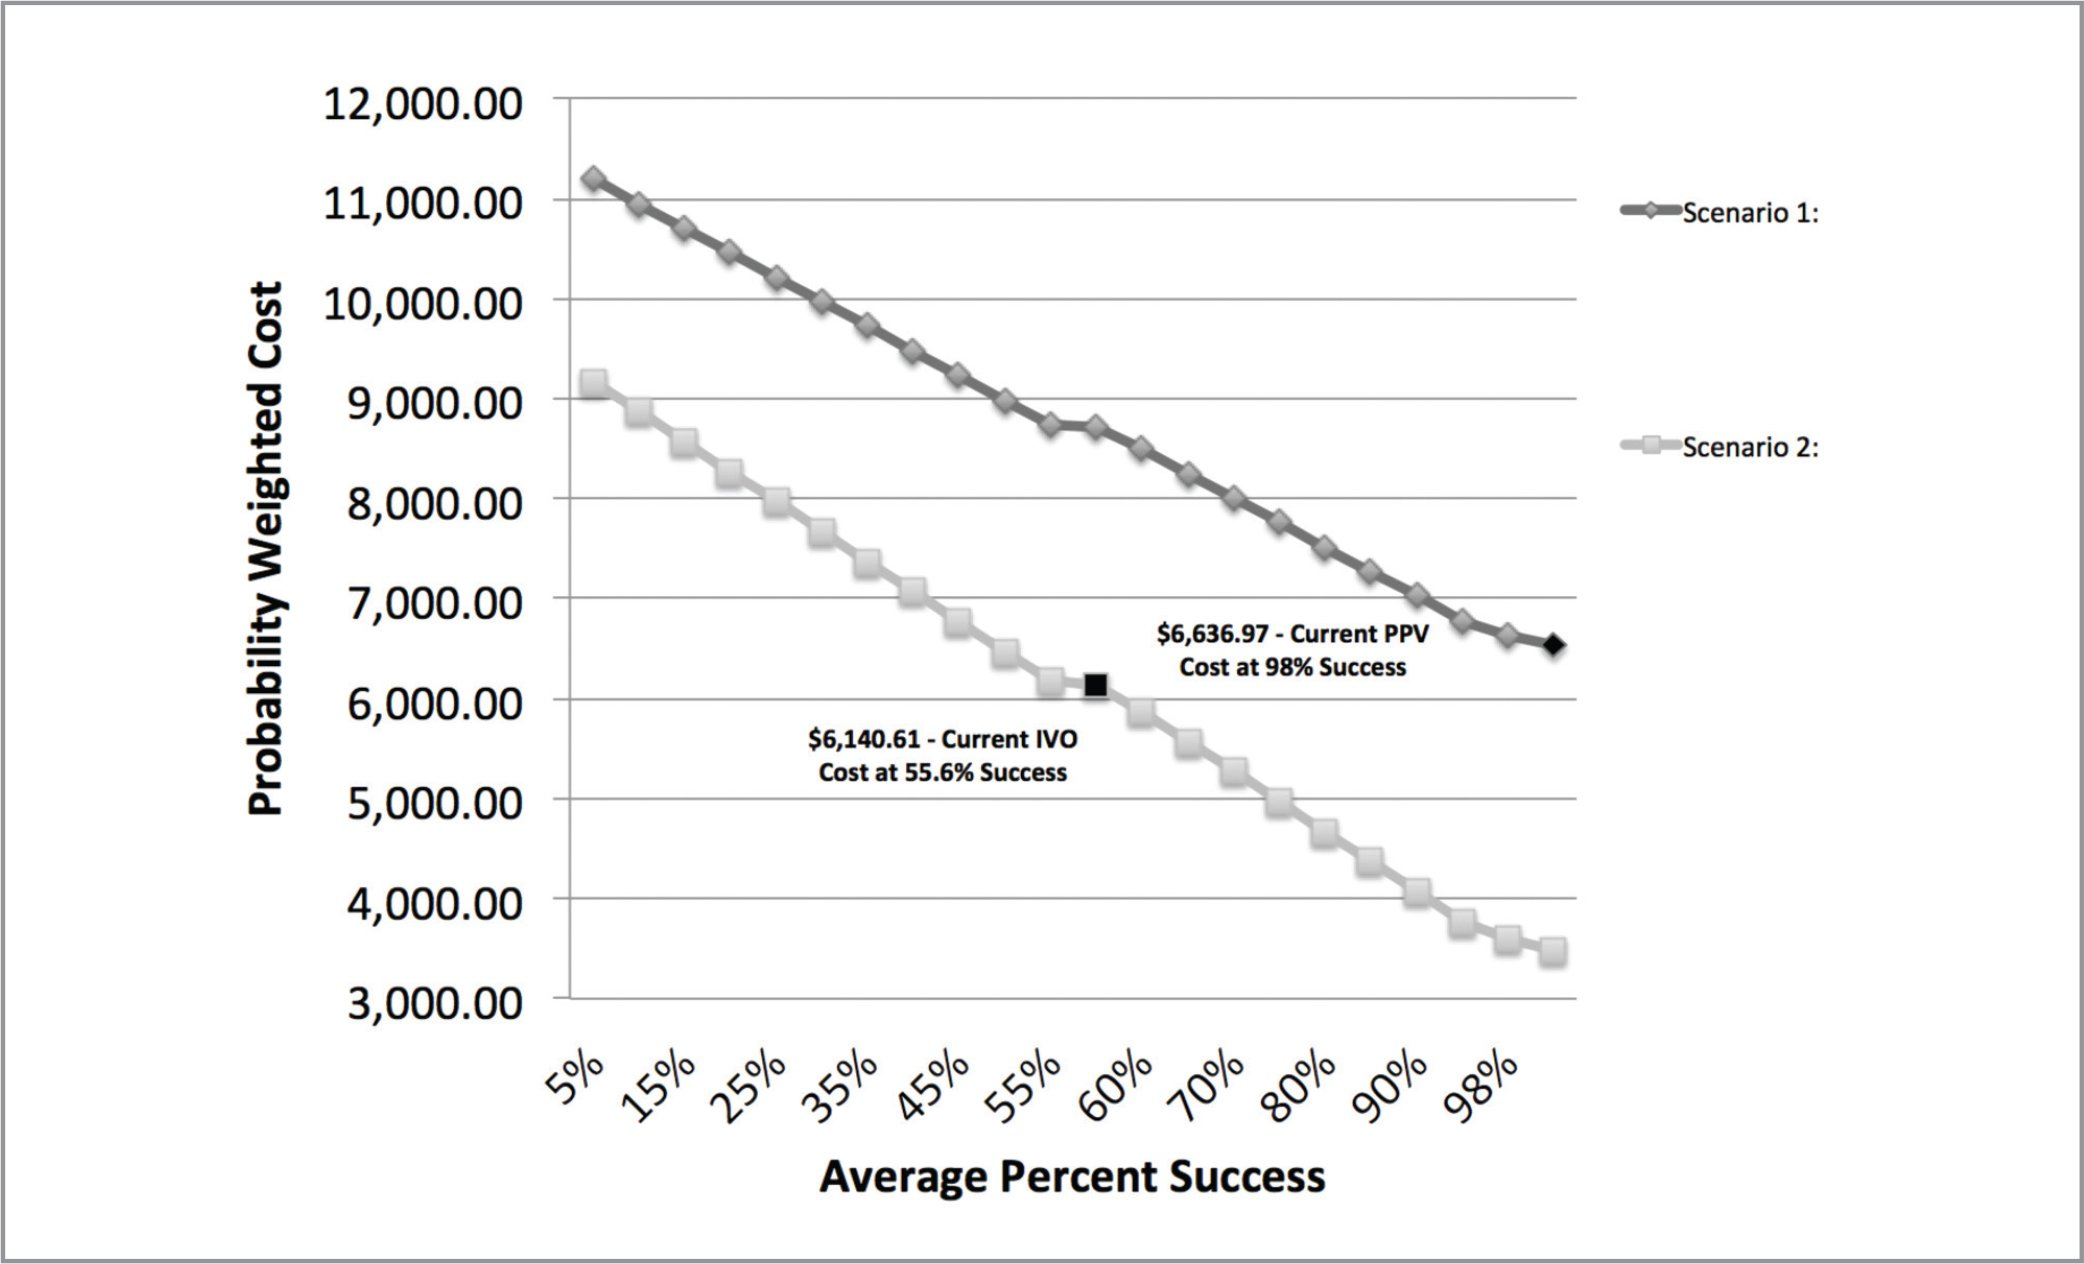 Probability weighted cost versus average percent success in 2016: The 2016 intravitreal ocriplasmin (IVO) cost at a 55.6% success rate was $6,340.61, whereas the 2016 pars plana vitrectomy cost at a 98% success rate was $6,636.97. The 2016 IVO cost reduction achieved cost effectiveness with a success rate of 55.6%.